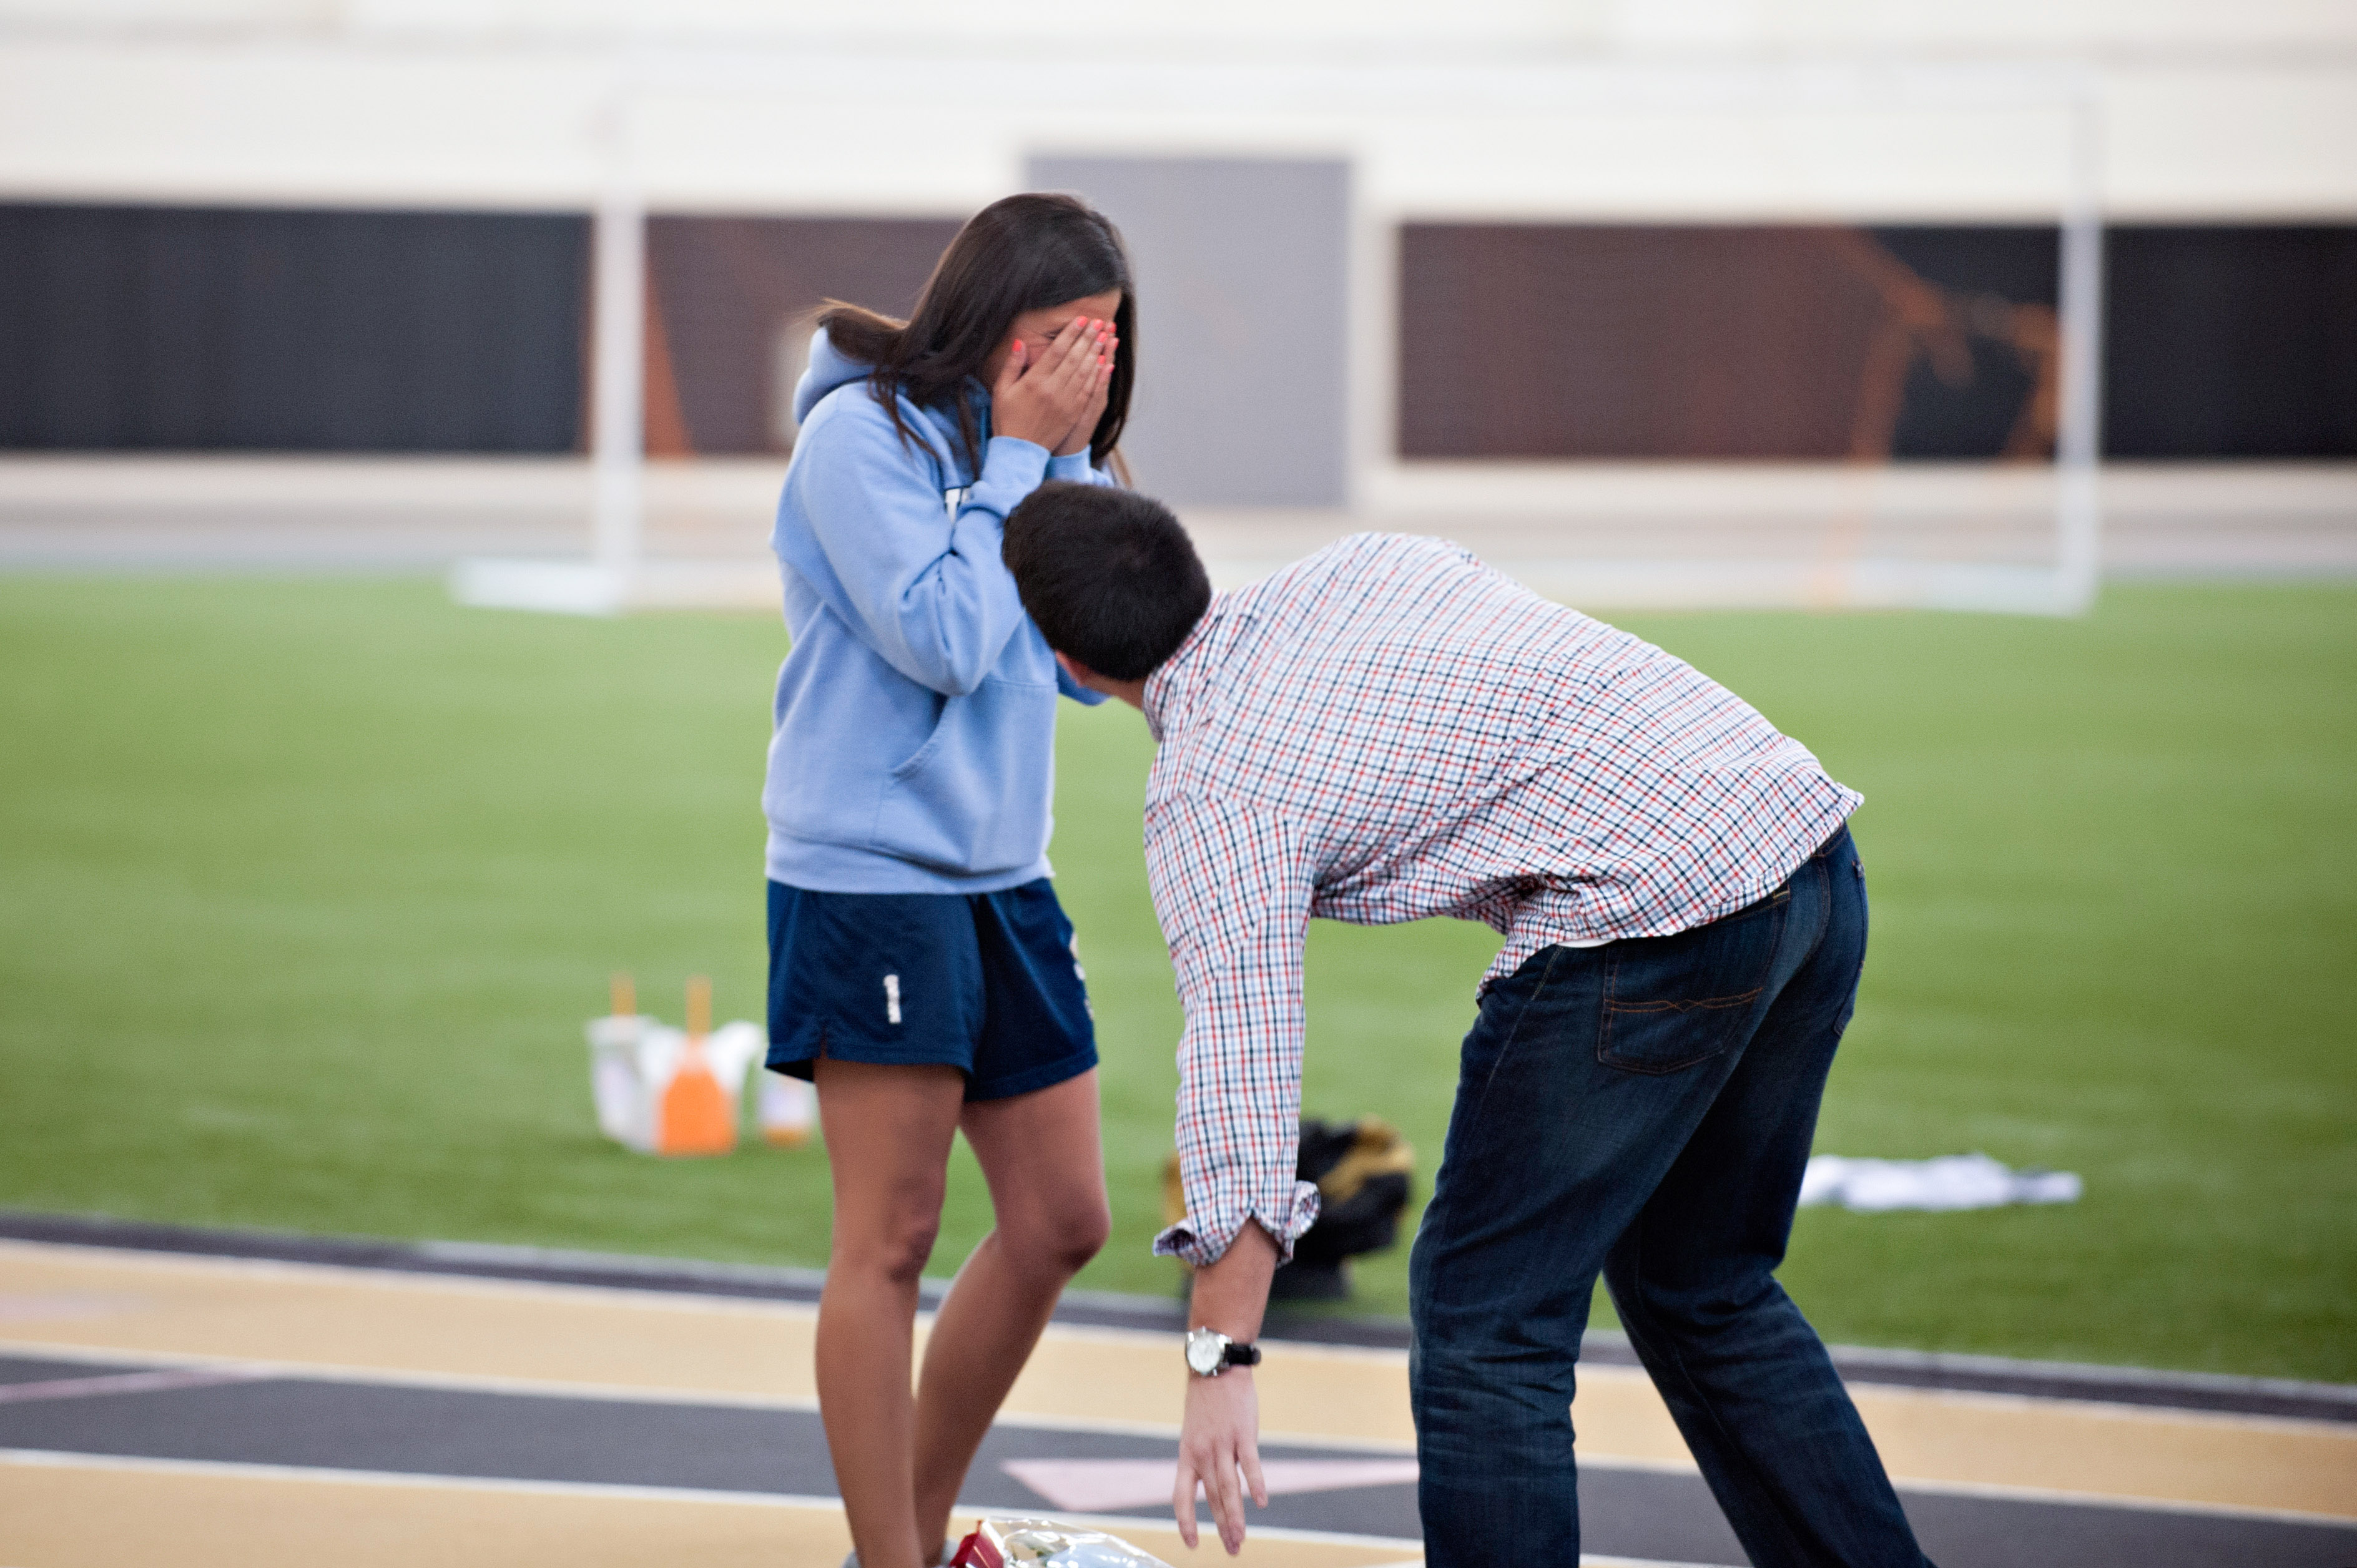 Image 8 of Marriage Proposal at Lacrosse Practice